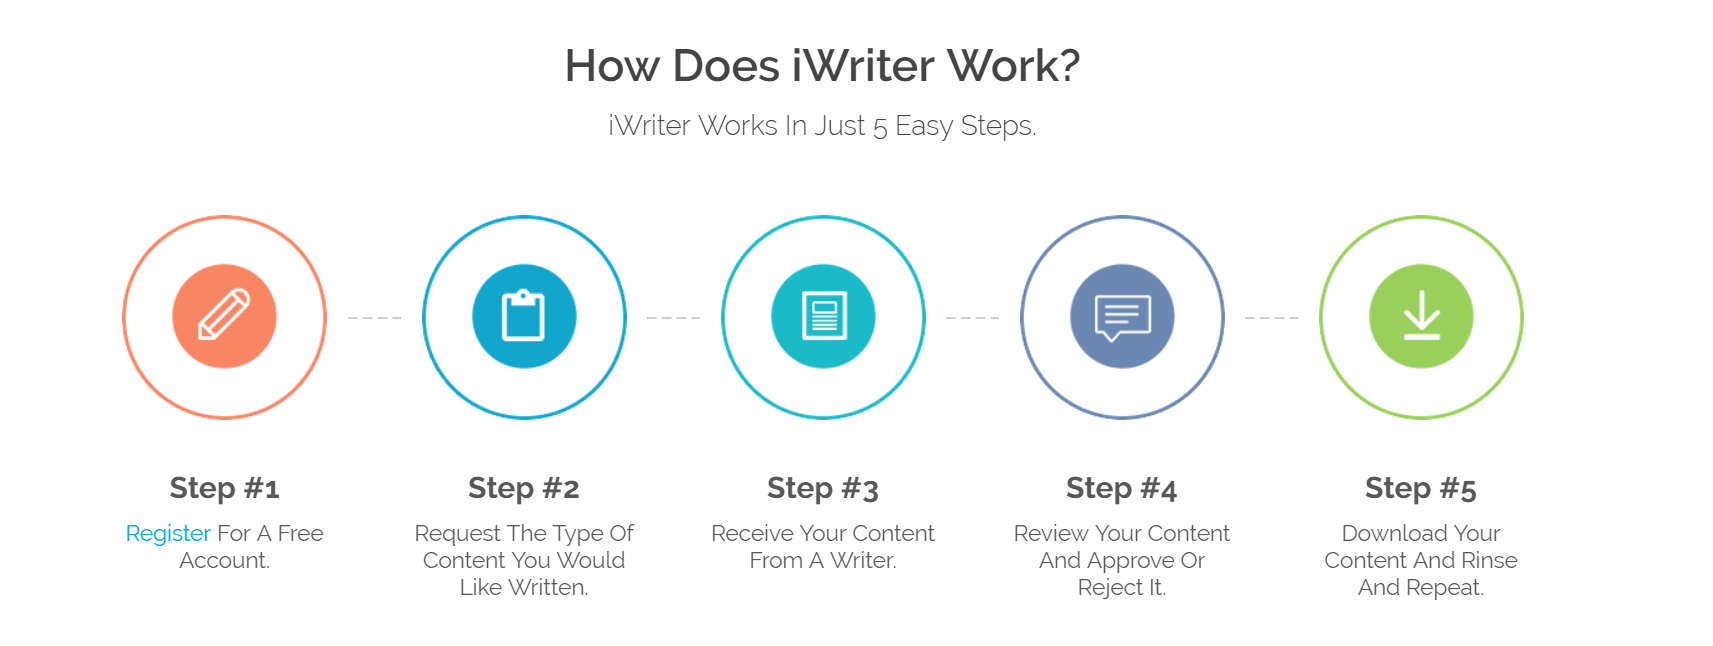 iWriter Service Review